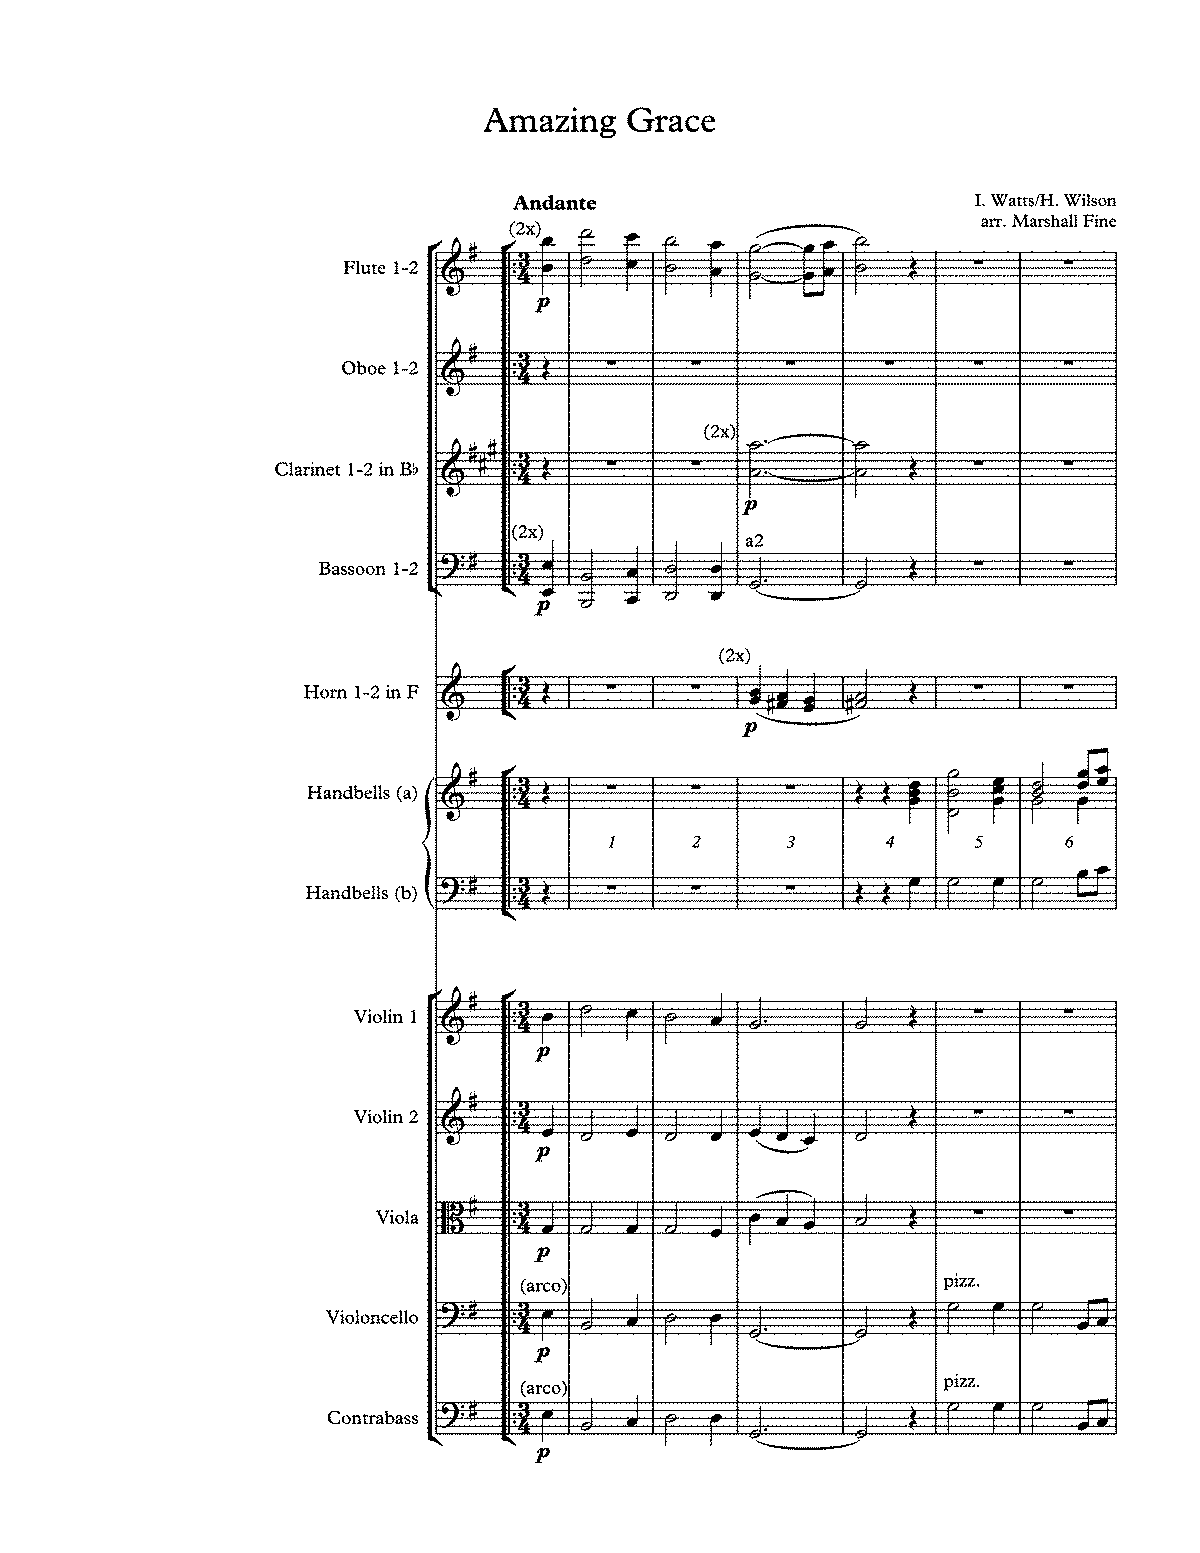 PMLP550713-Handbell IW Amazing Grace - score and parts.pdf